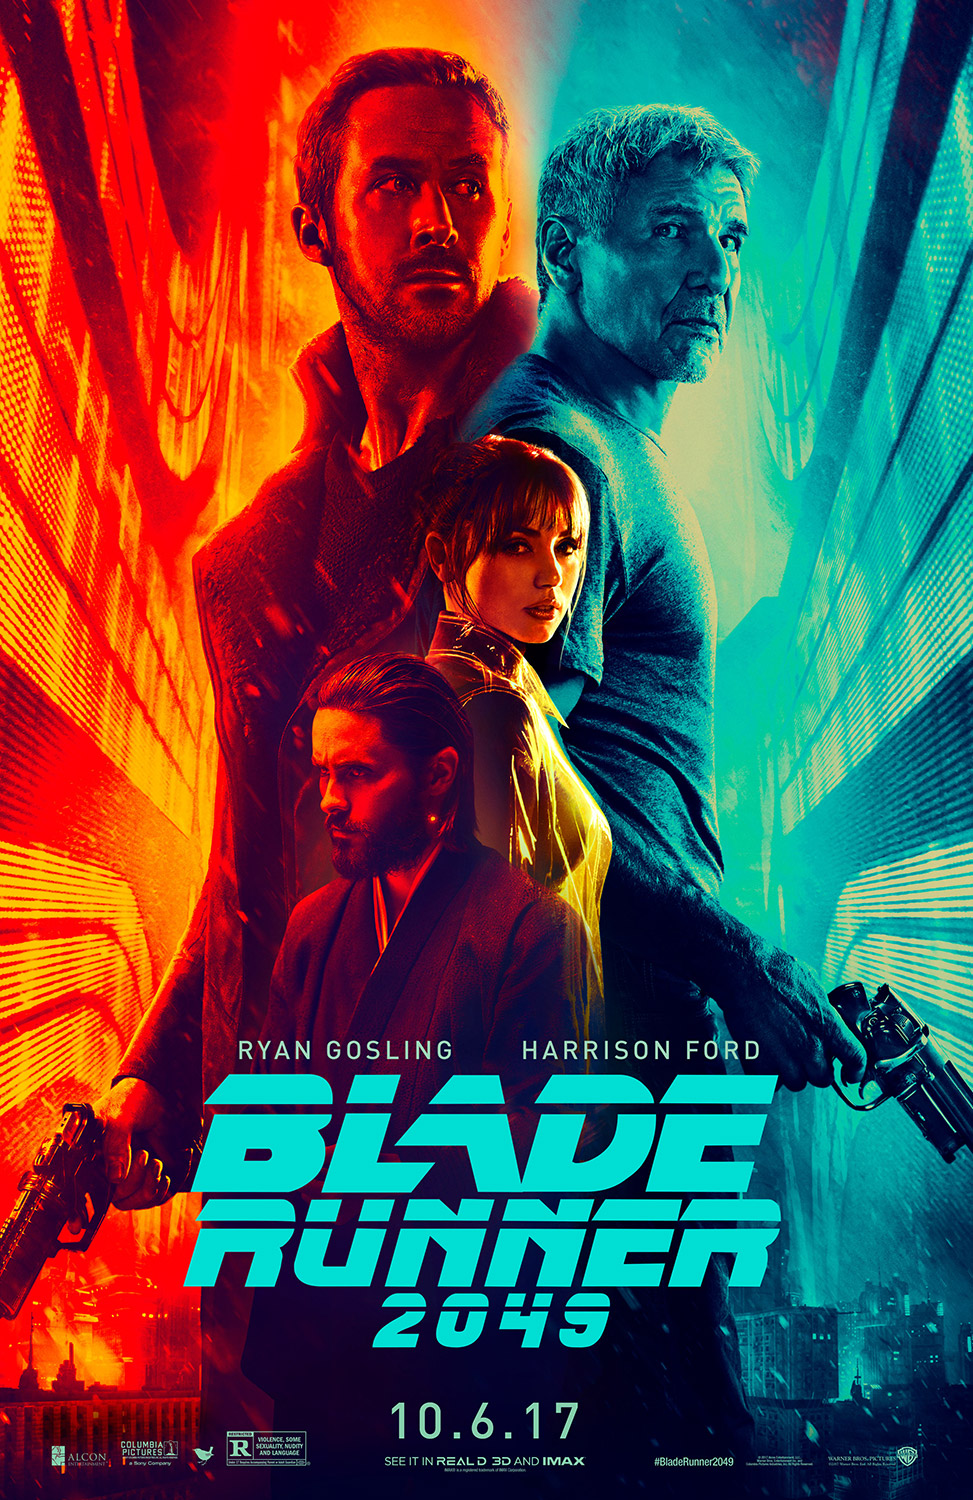 blade-runner-2049-official-poster-001.jpg